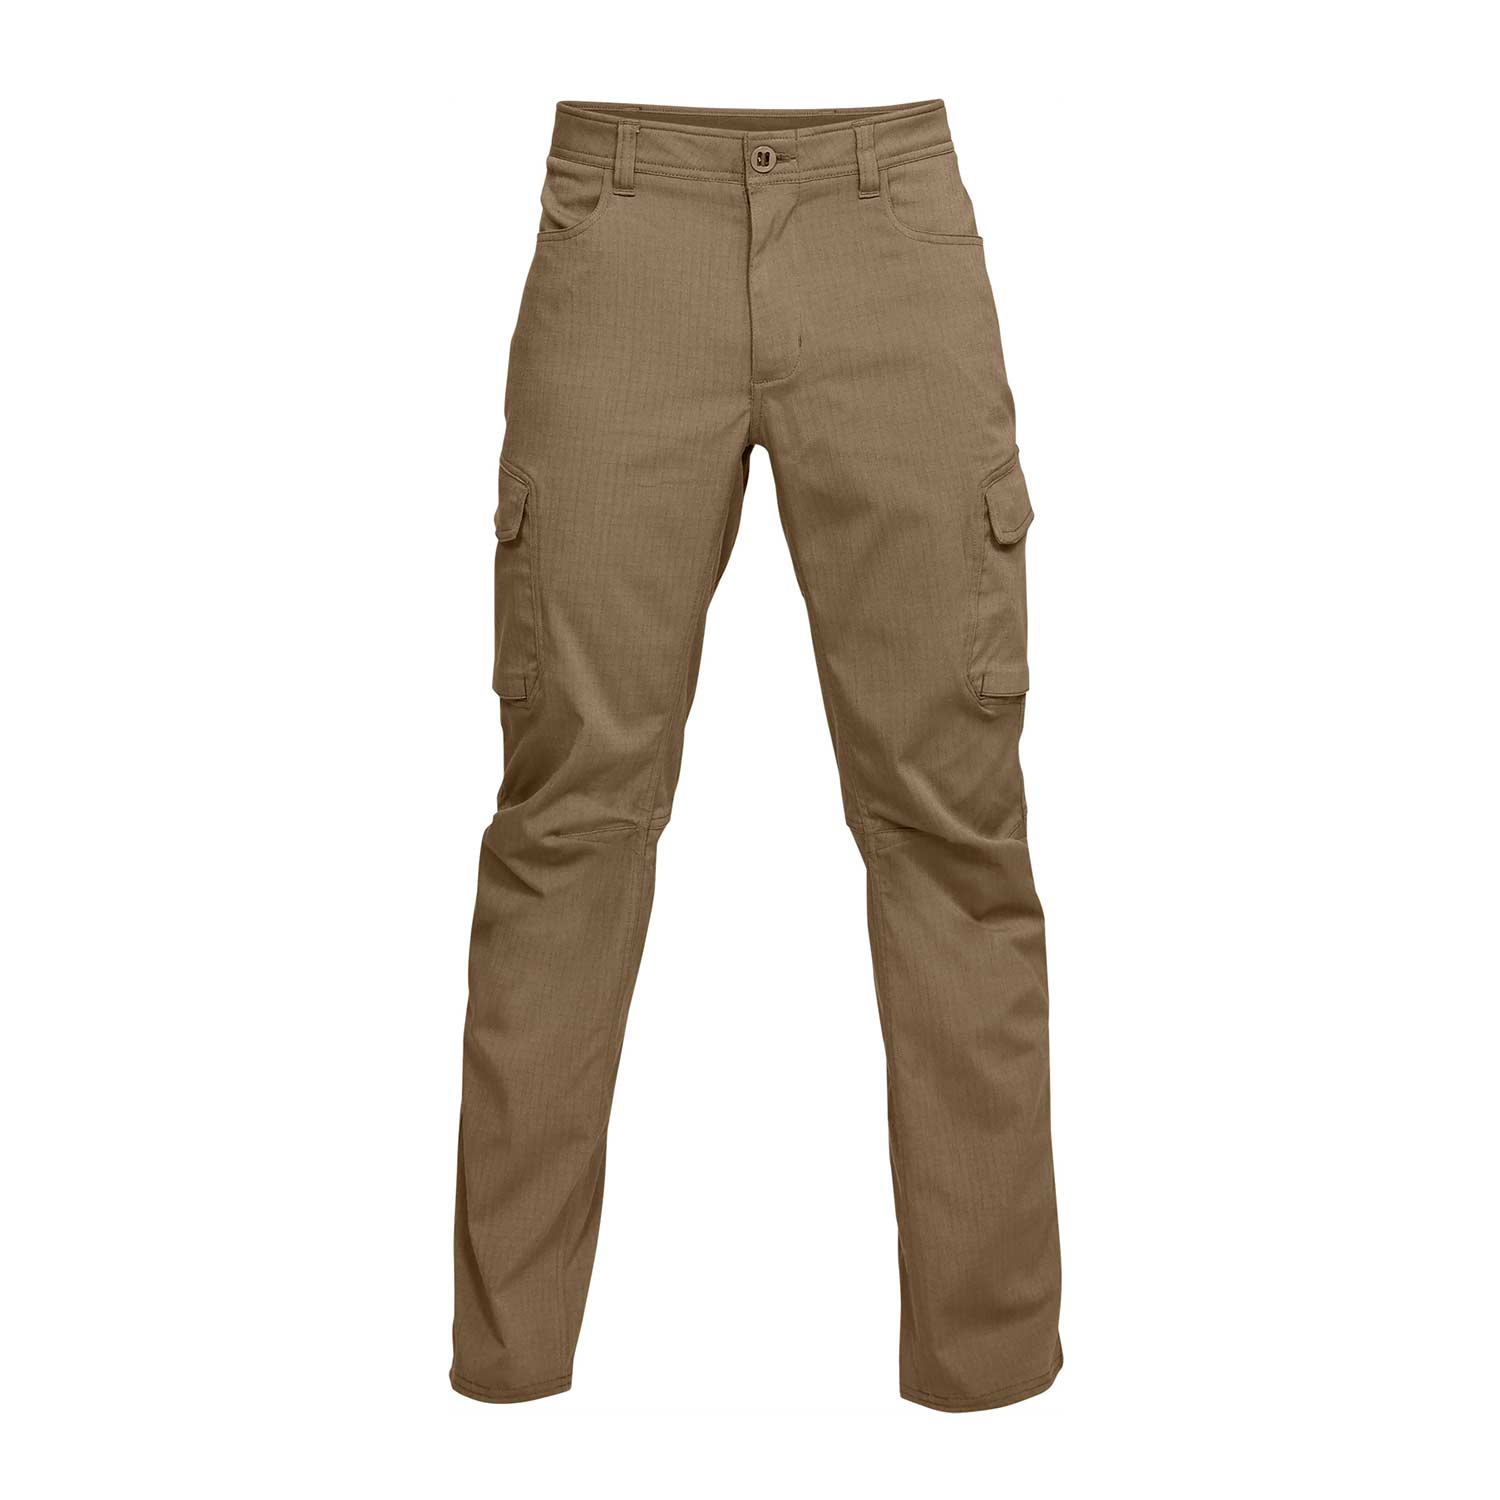 Under Armour Enduro Tactical Cargo Pants